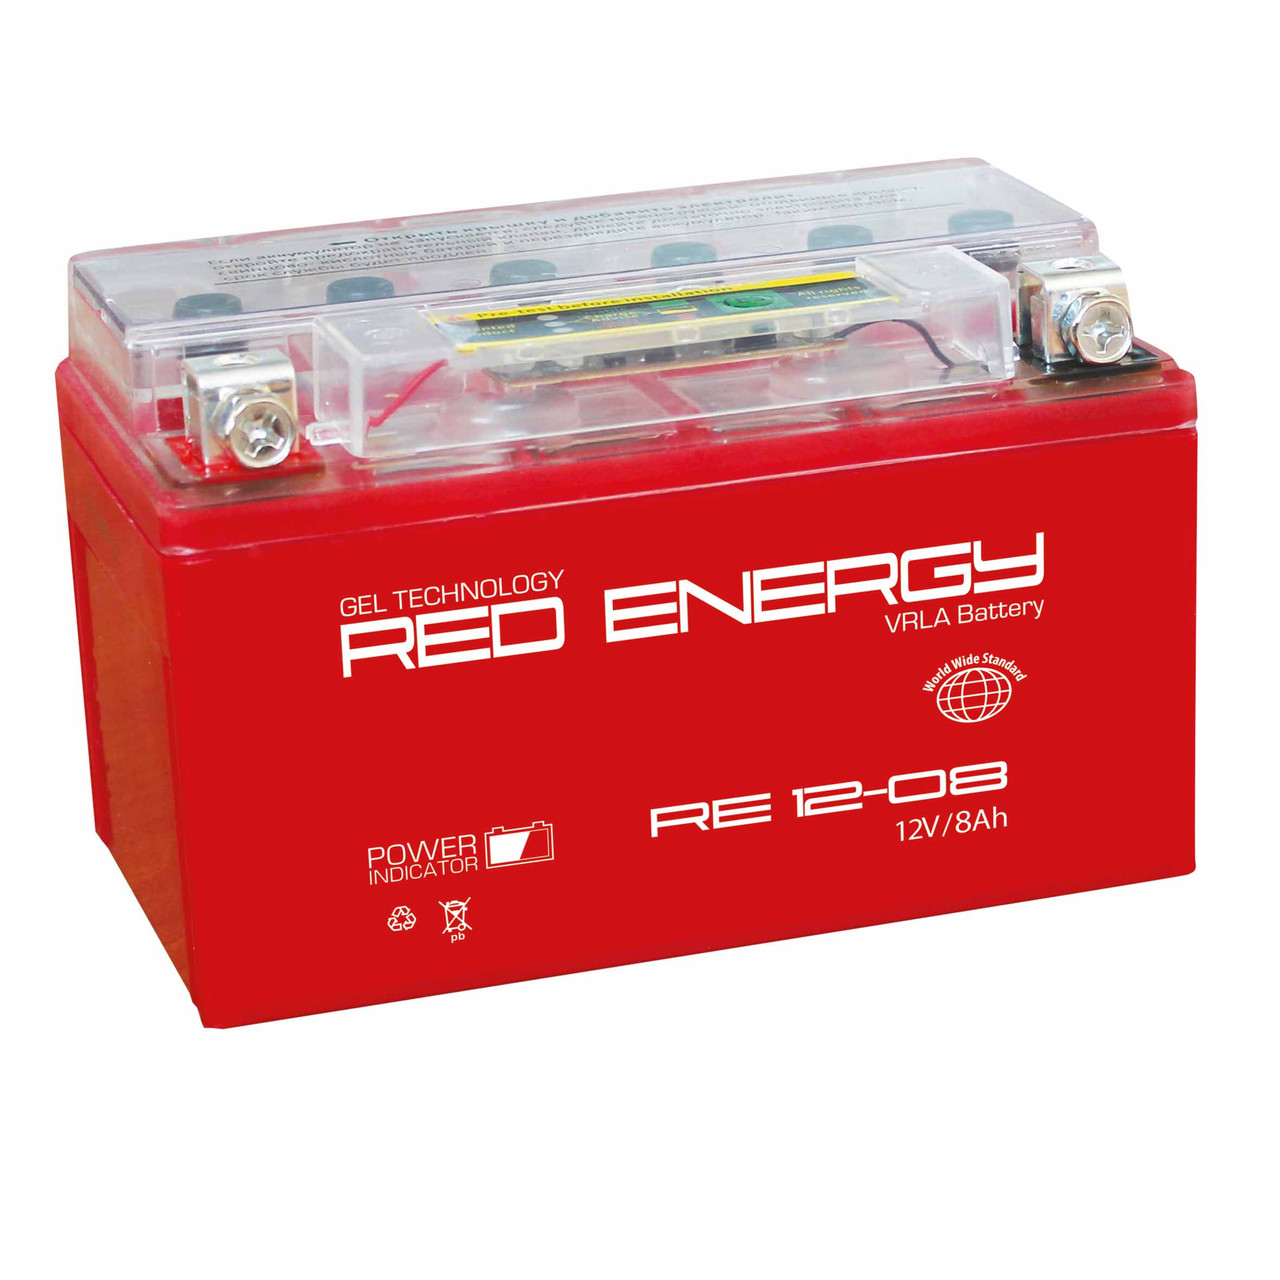 АККУМУЛЯТОР RED ENERGY RE 12-08 (150Х66Х95)